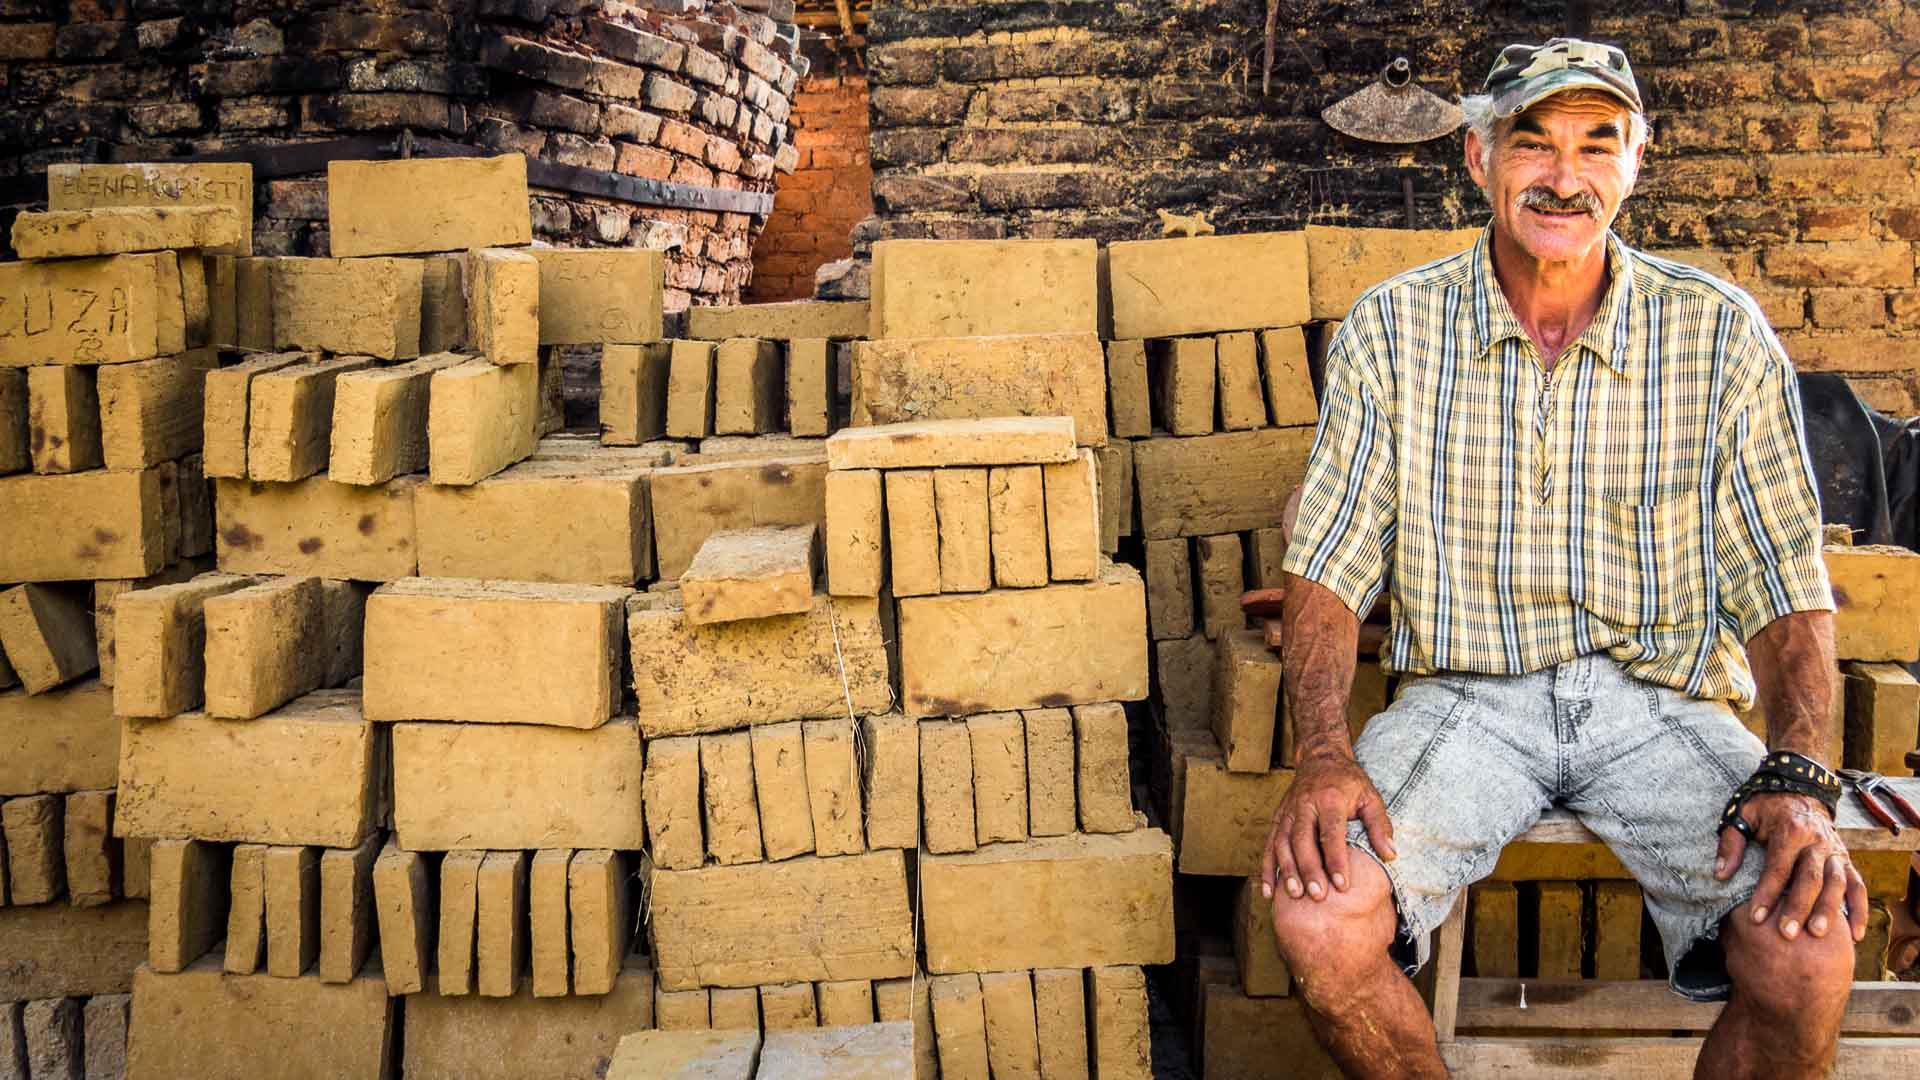 Brick - maker in Viscri